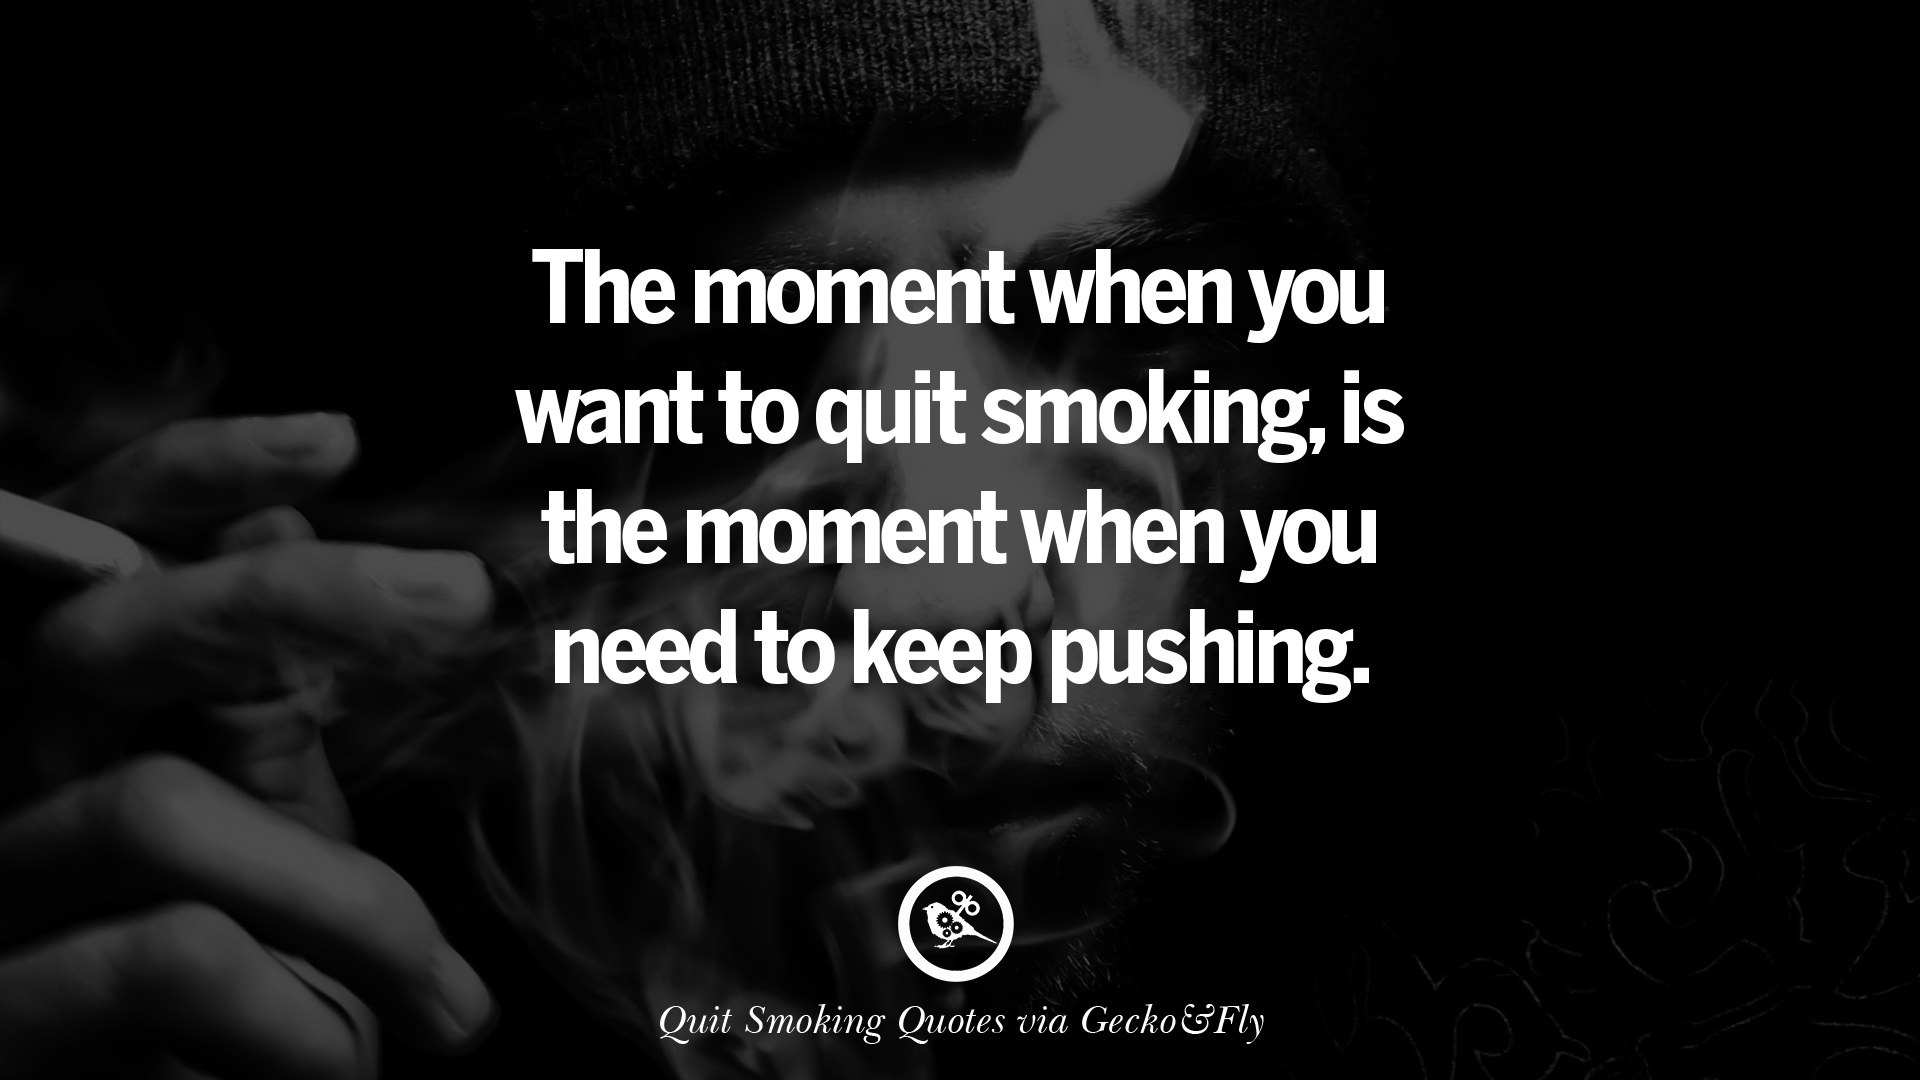 20 Motivational Slogans To Help You Quit Smoking And Stop Lungs Cancer